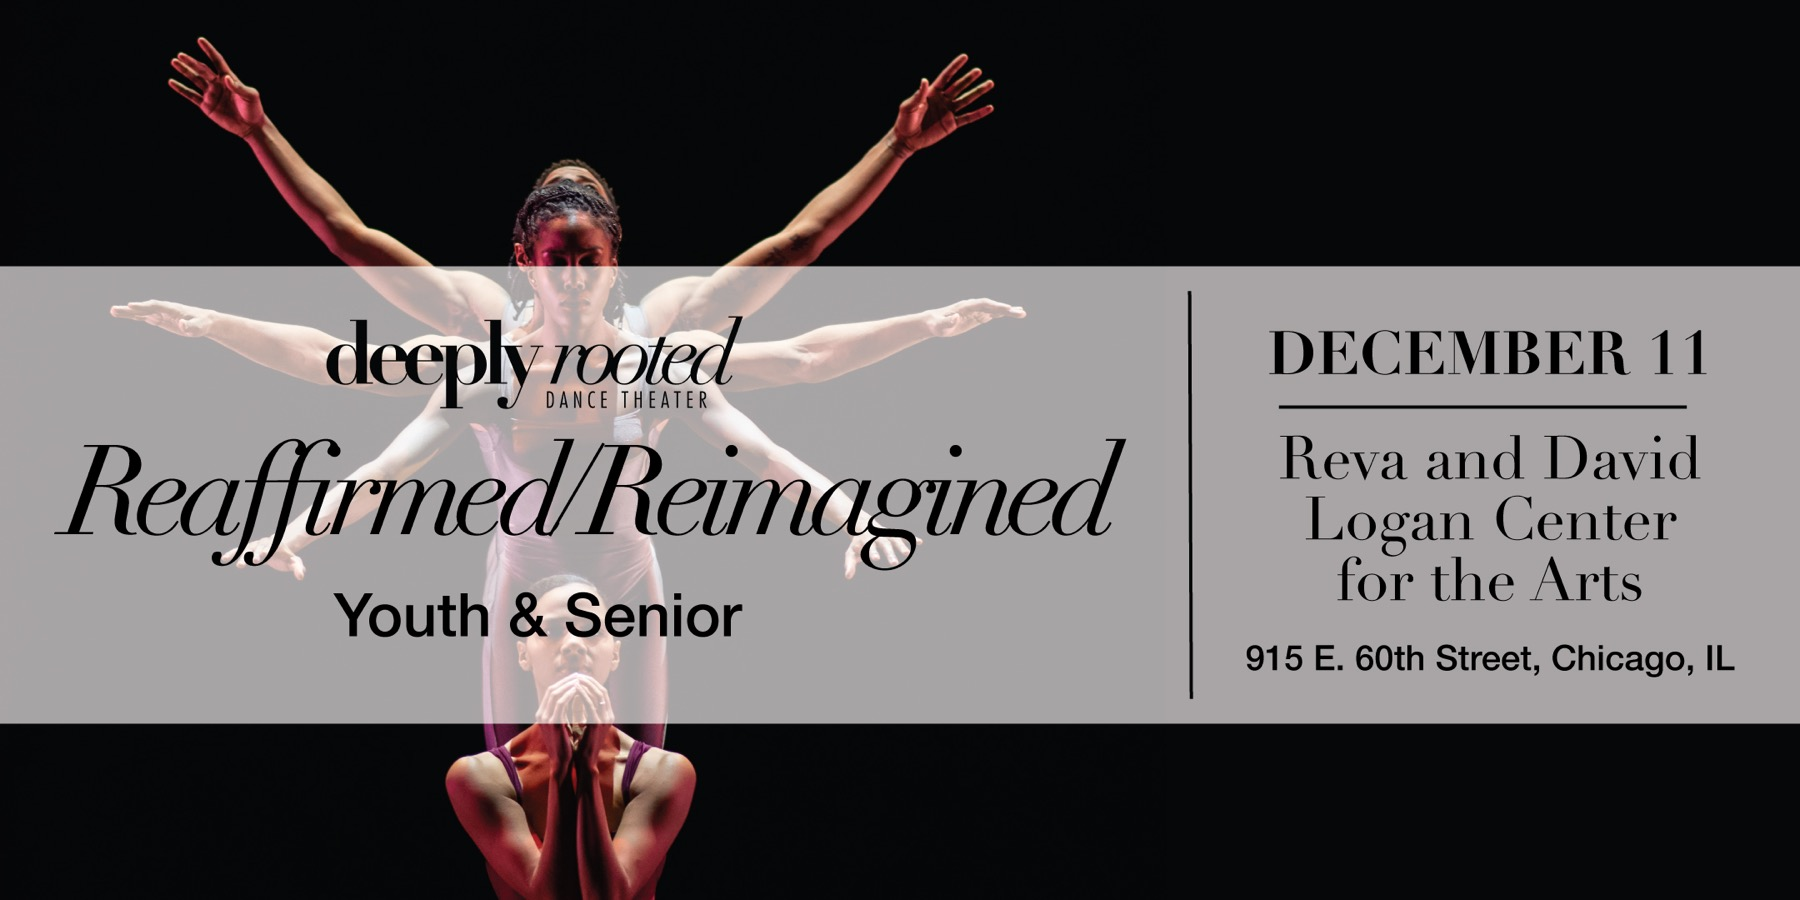 Deeply Rooted Dance Theater Reaffirmed/Reimagined – Youth & Senior